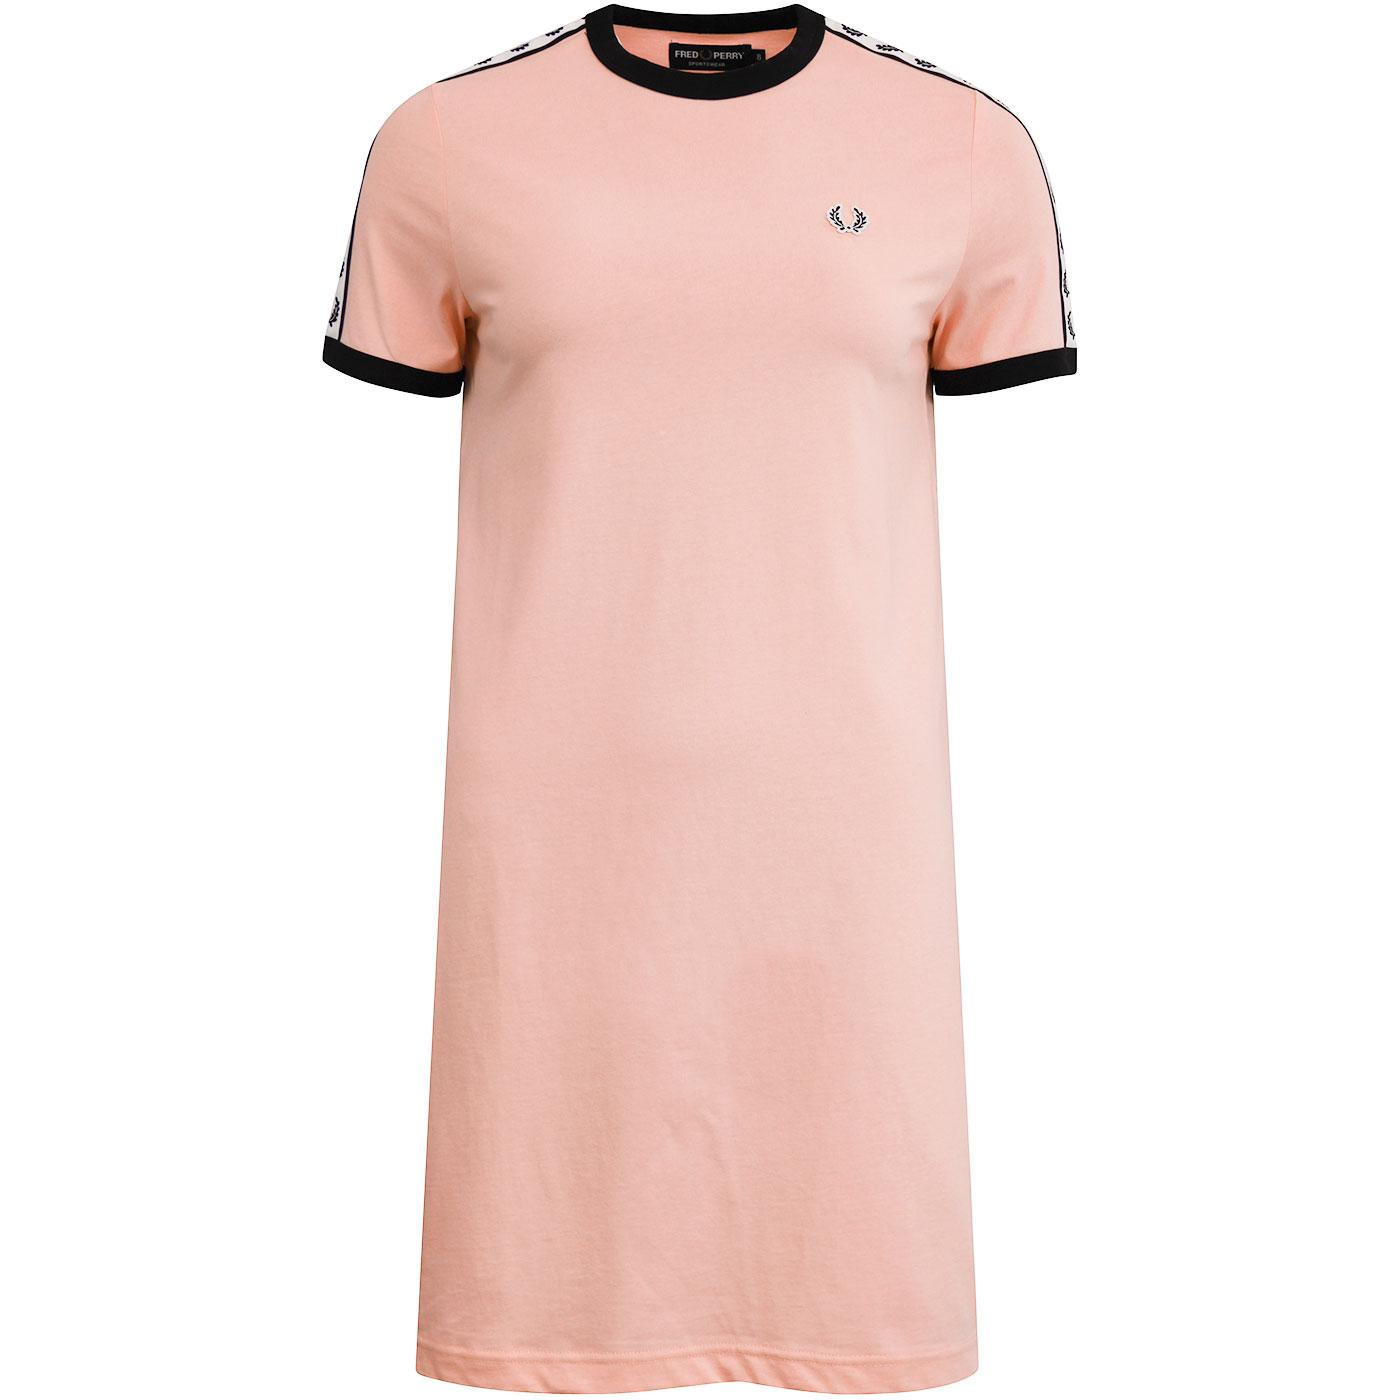 FRED PERRY Women's Taped Sleeve Ringer Tee Dress